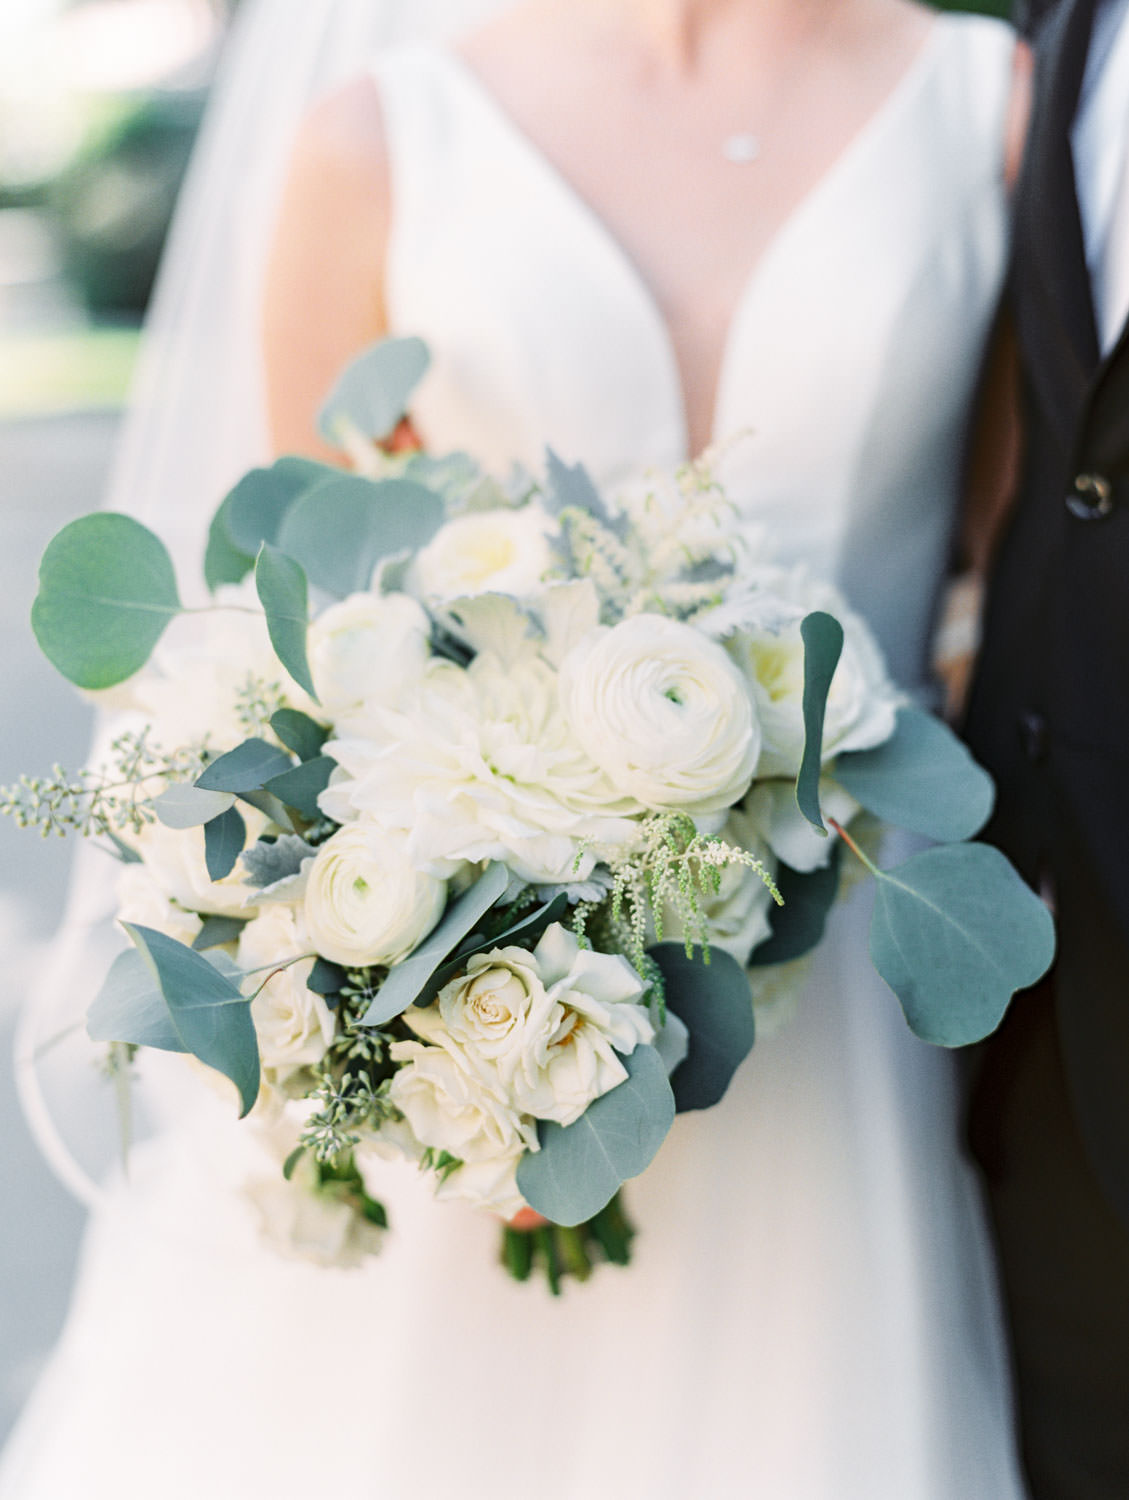 Groom in black suit and blush tie posing with bride in Stella York gown with dahlia and rose ivory bouquet with silver dollar eucalyptus. La Jolla wedding shot on film by Cavin Elizabeth Photography